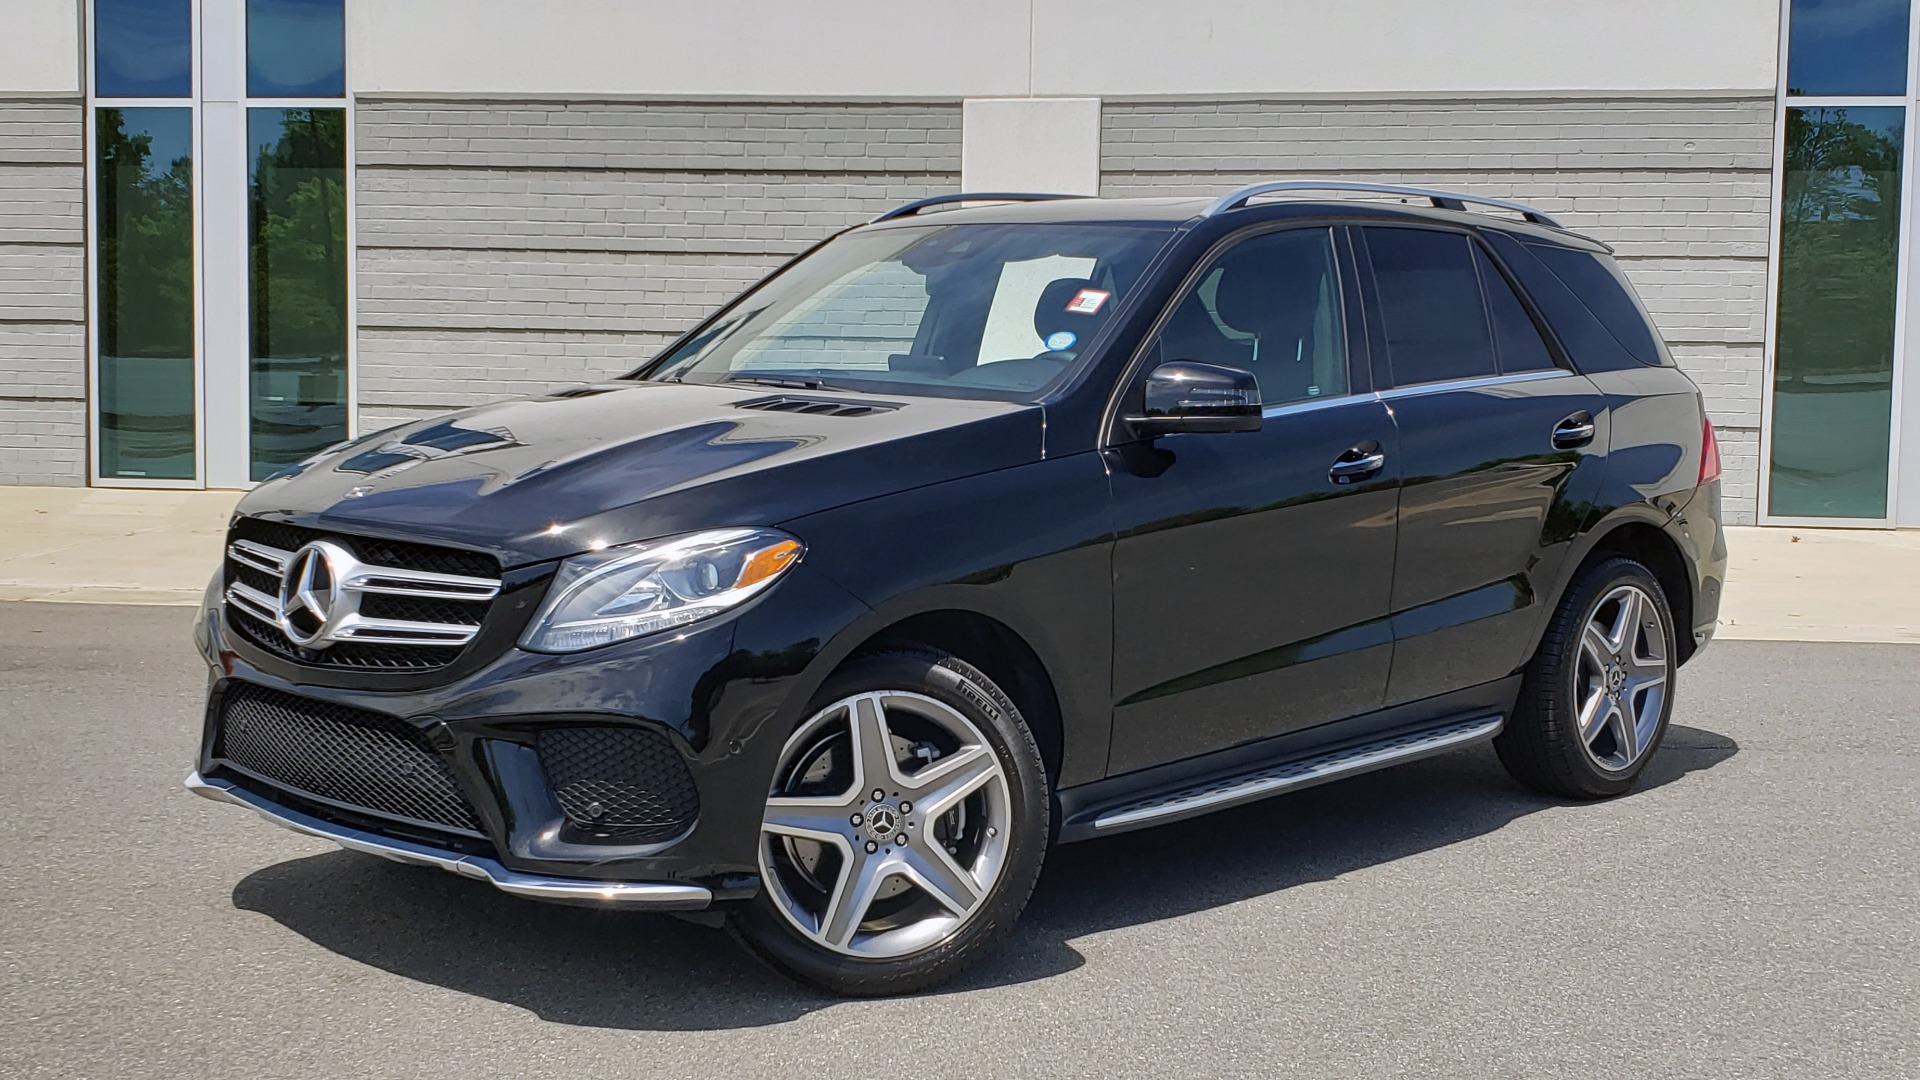 Used 2018 Mercedes-Benz GLE 350 PREMIUM / NAV / H/K SOUND / SUNROOF / REARVIEW for sale Sold at Formula Imports in Charlotte NC 28227 5